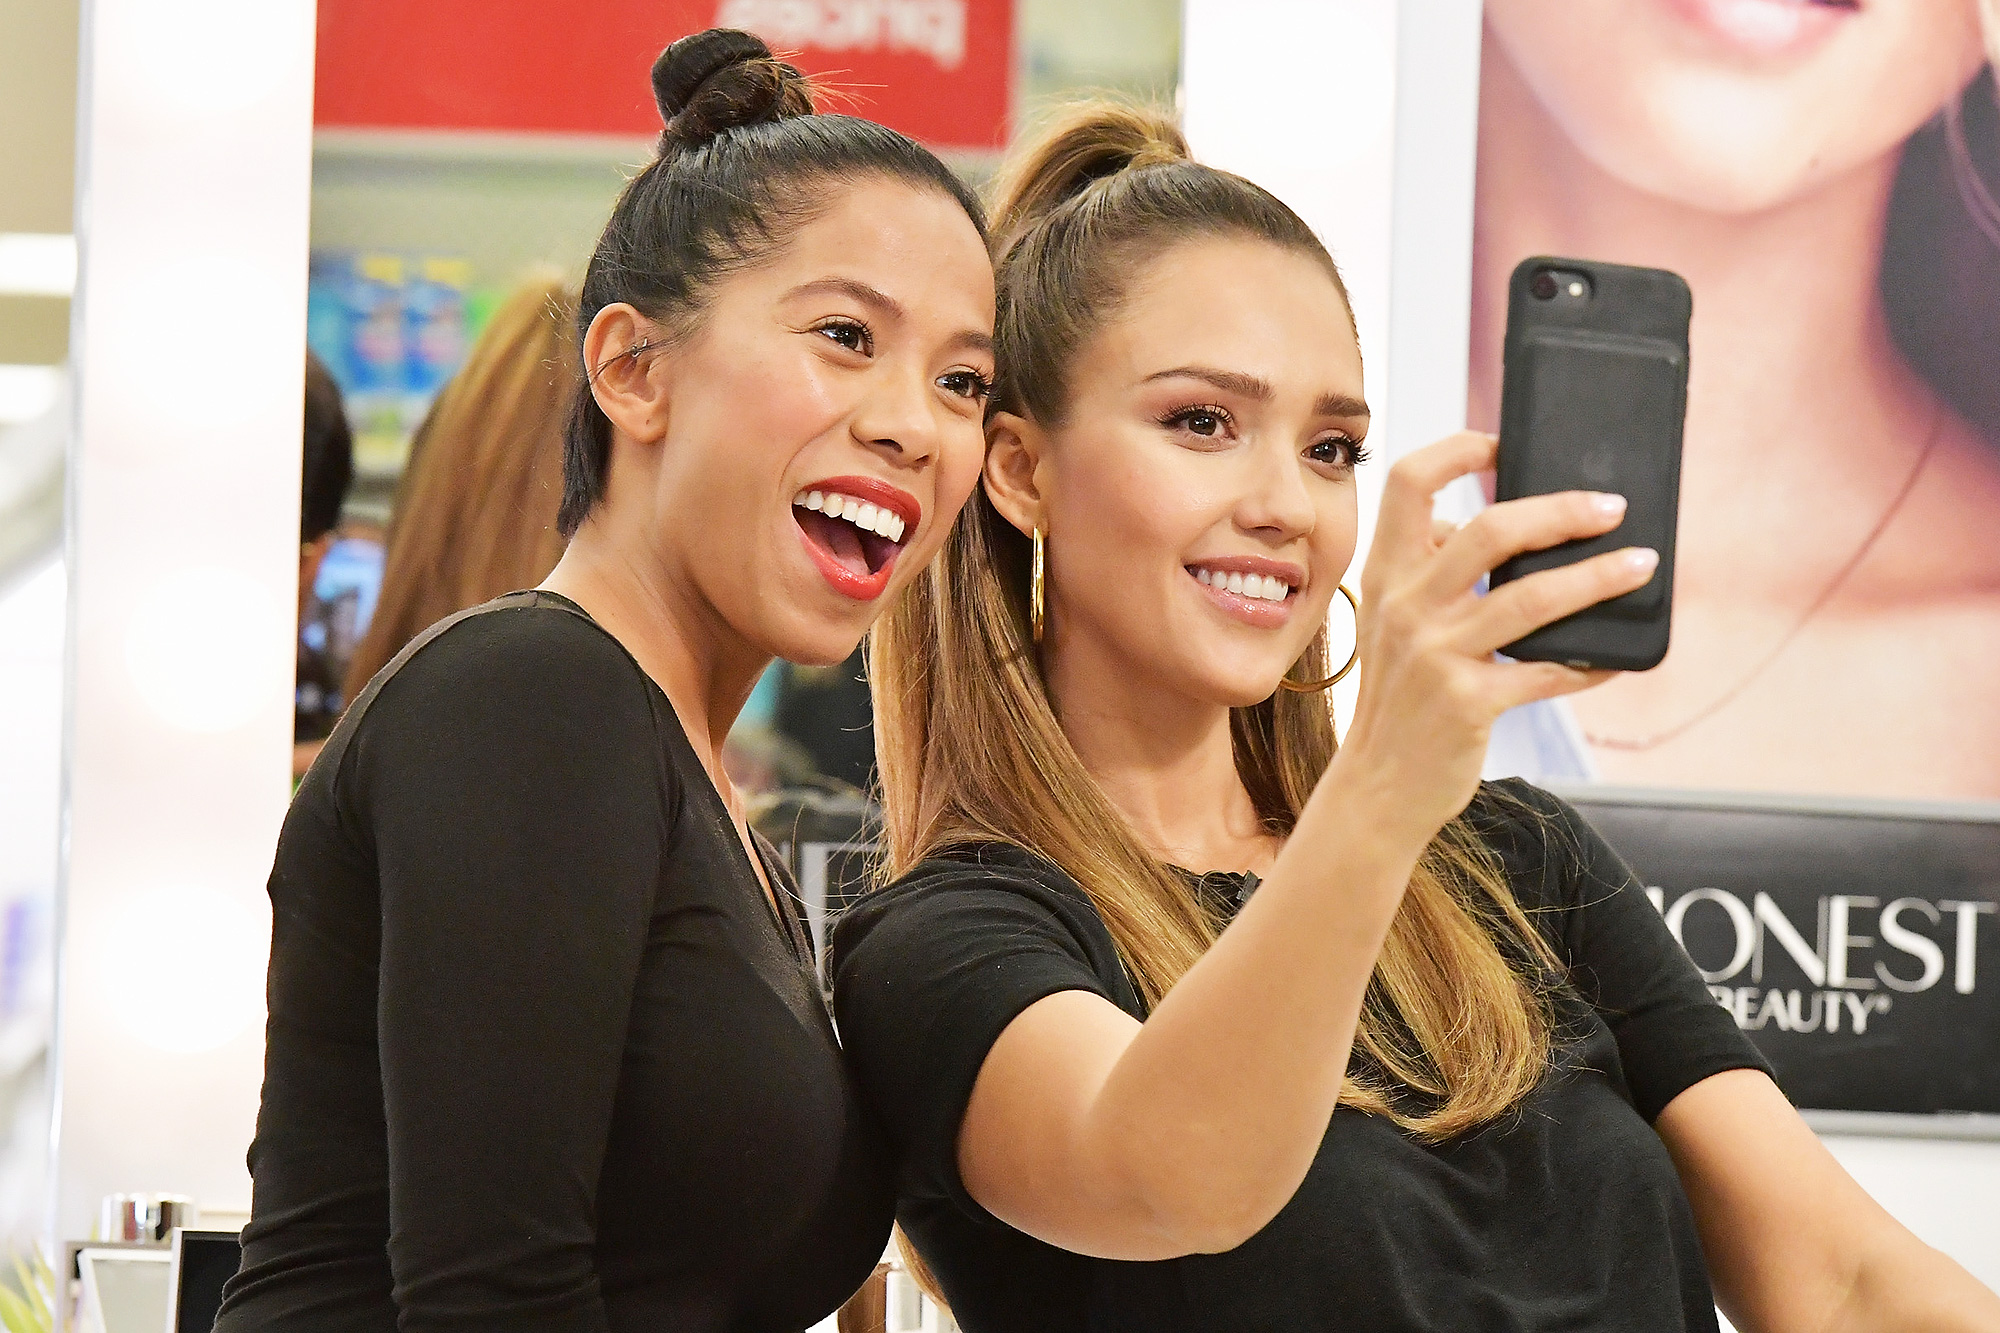 Jessica Alba Surprises Target Guests With Honest Beauty Makeovers